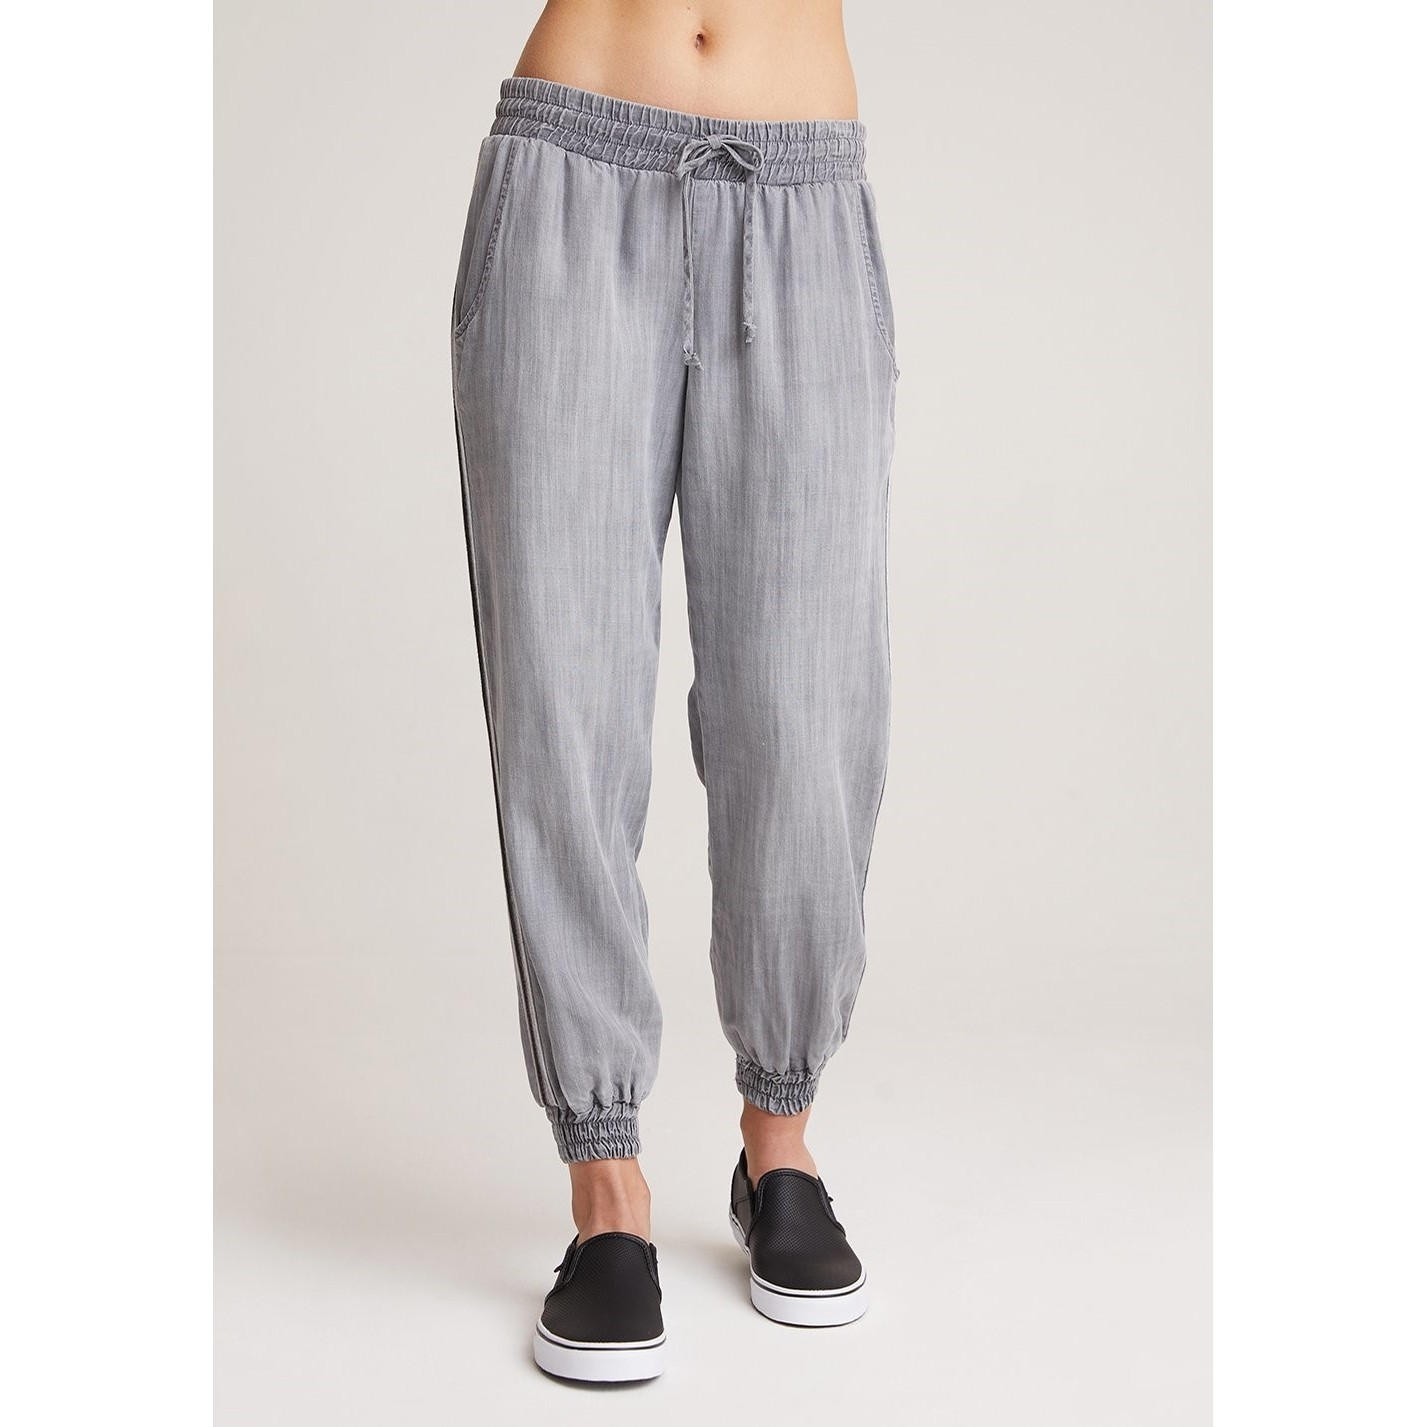 Trimmed Jogger (Shadows Wash)